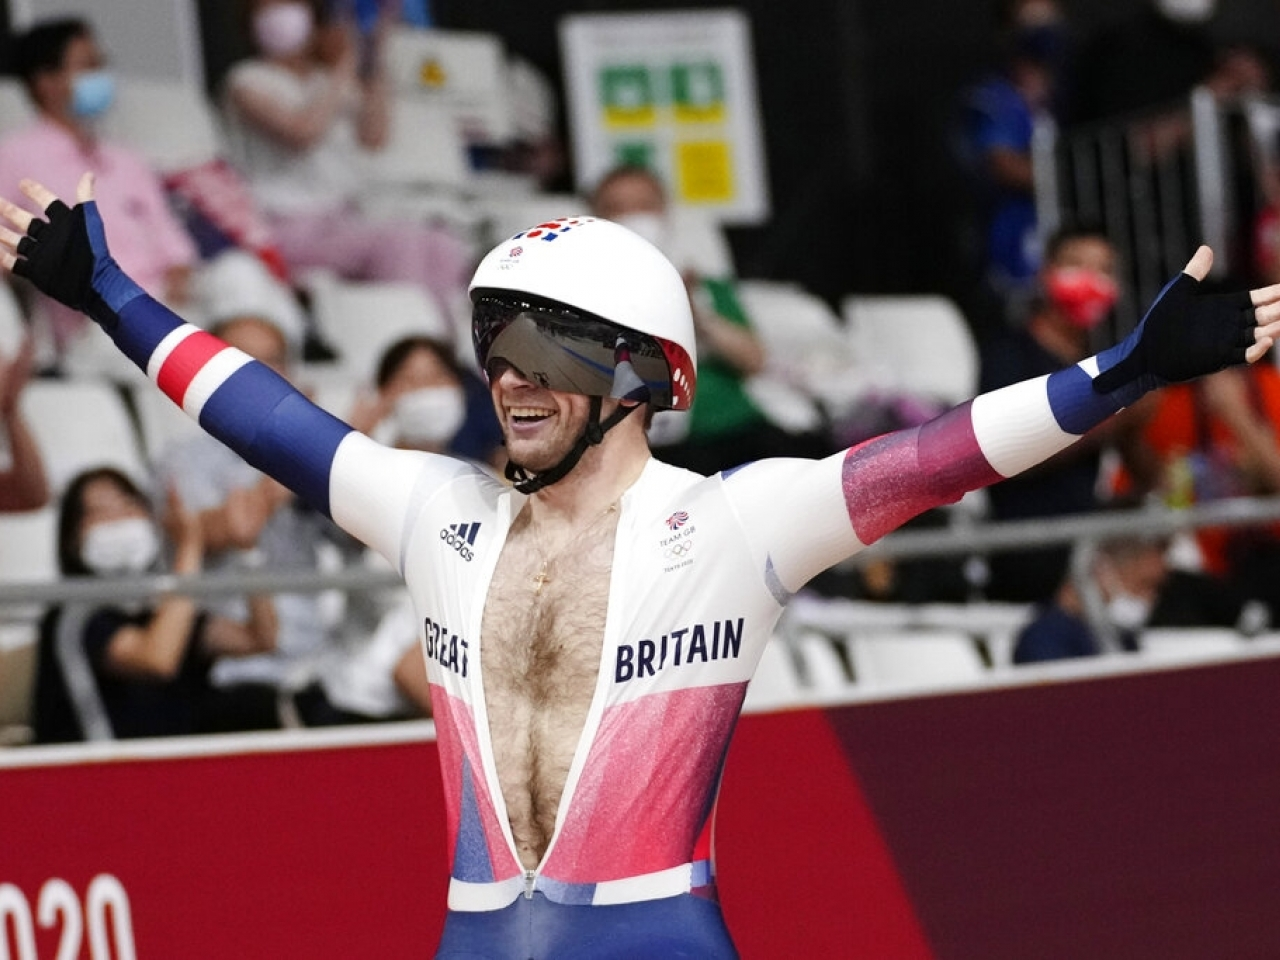 Jason Kenny is now the most-decorated British Olympian ever. Photo: AP